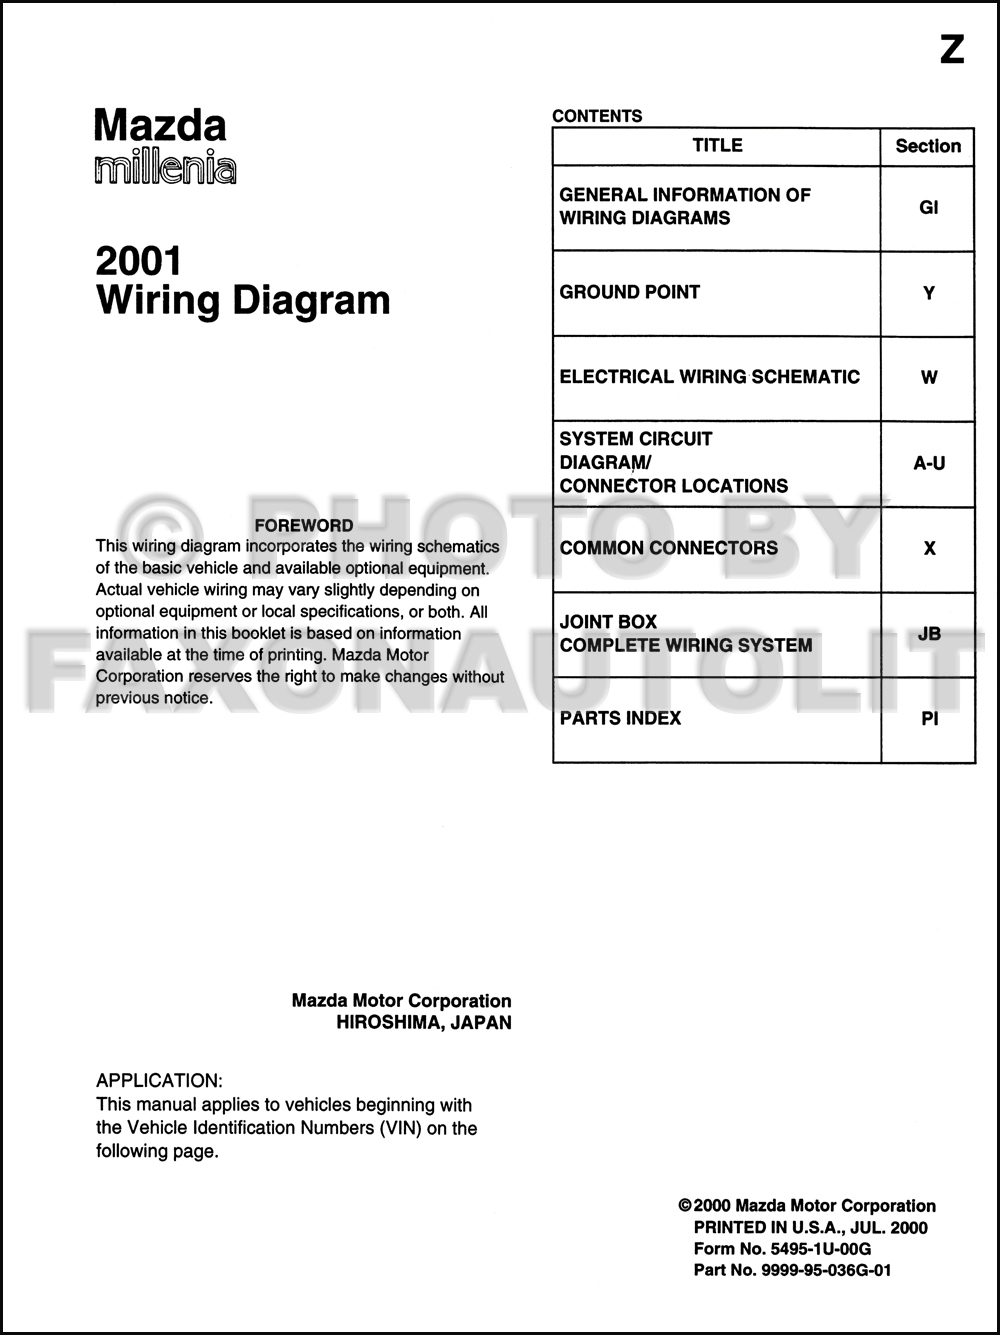 2001 Mazda Millenia Wiring Diagram Manual Original. click on thumbnail to  zoom